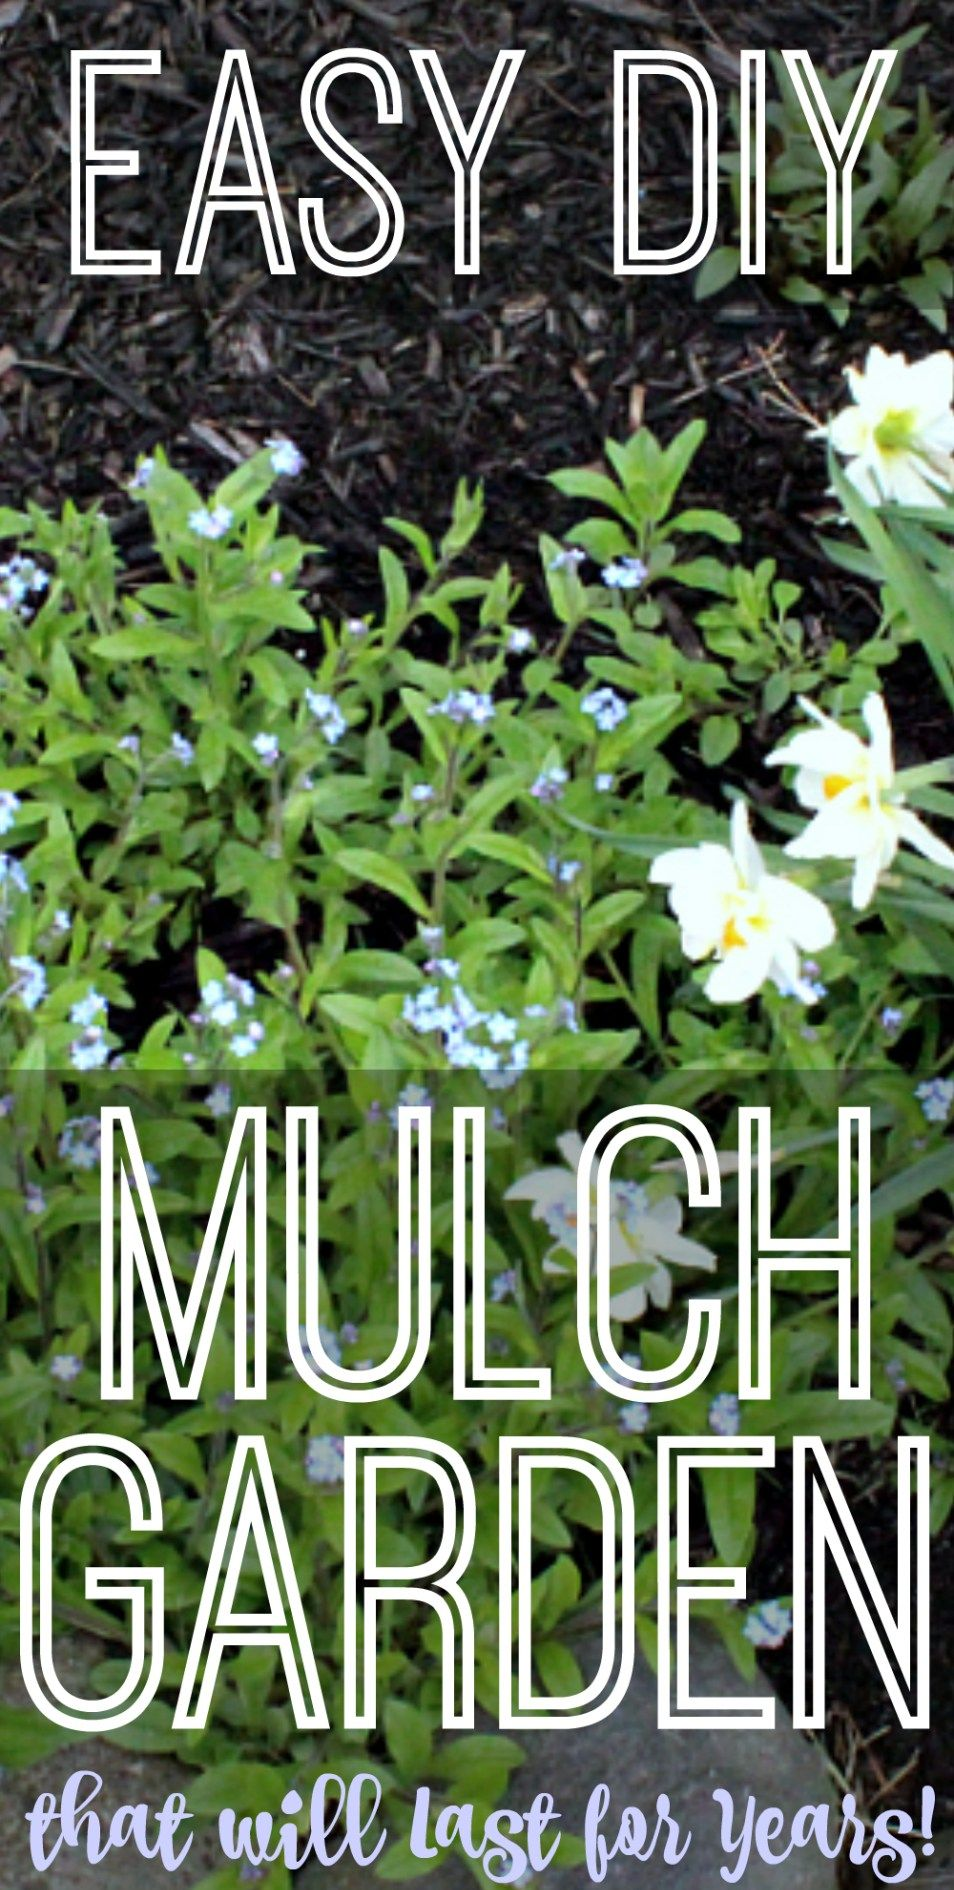 Photo of Easy DIY Mulch Garden that will Last for Years!